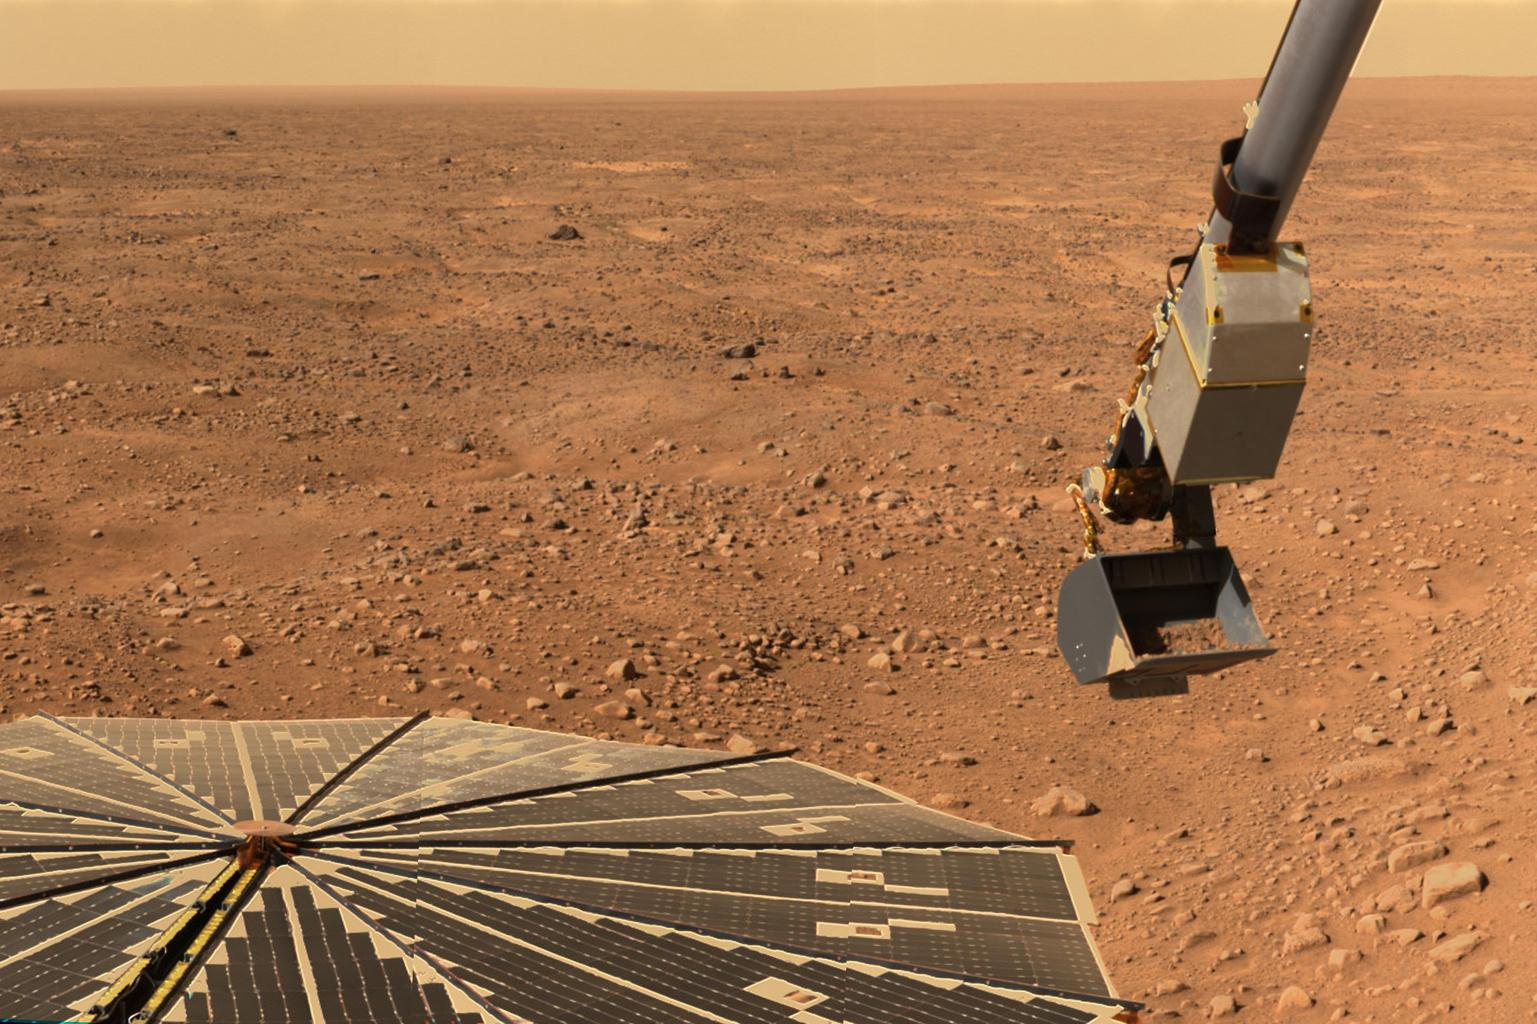 This panorama image of NASA's Phoenix Mars Lander's solar panel and the lander's Robotic Arm with a sample in the scoop. The image was taken just before the sample was delivered to the Optical Microscope.